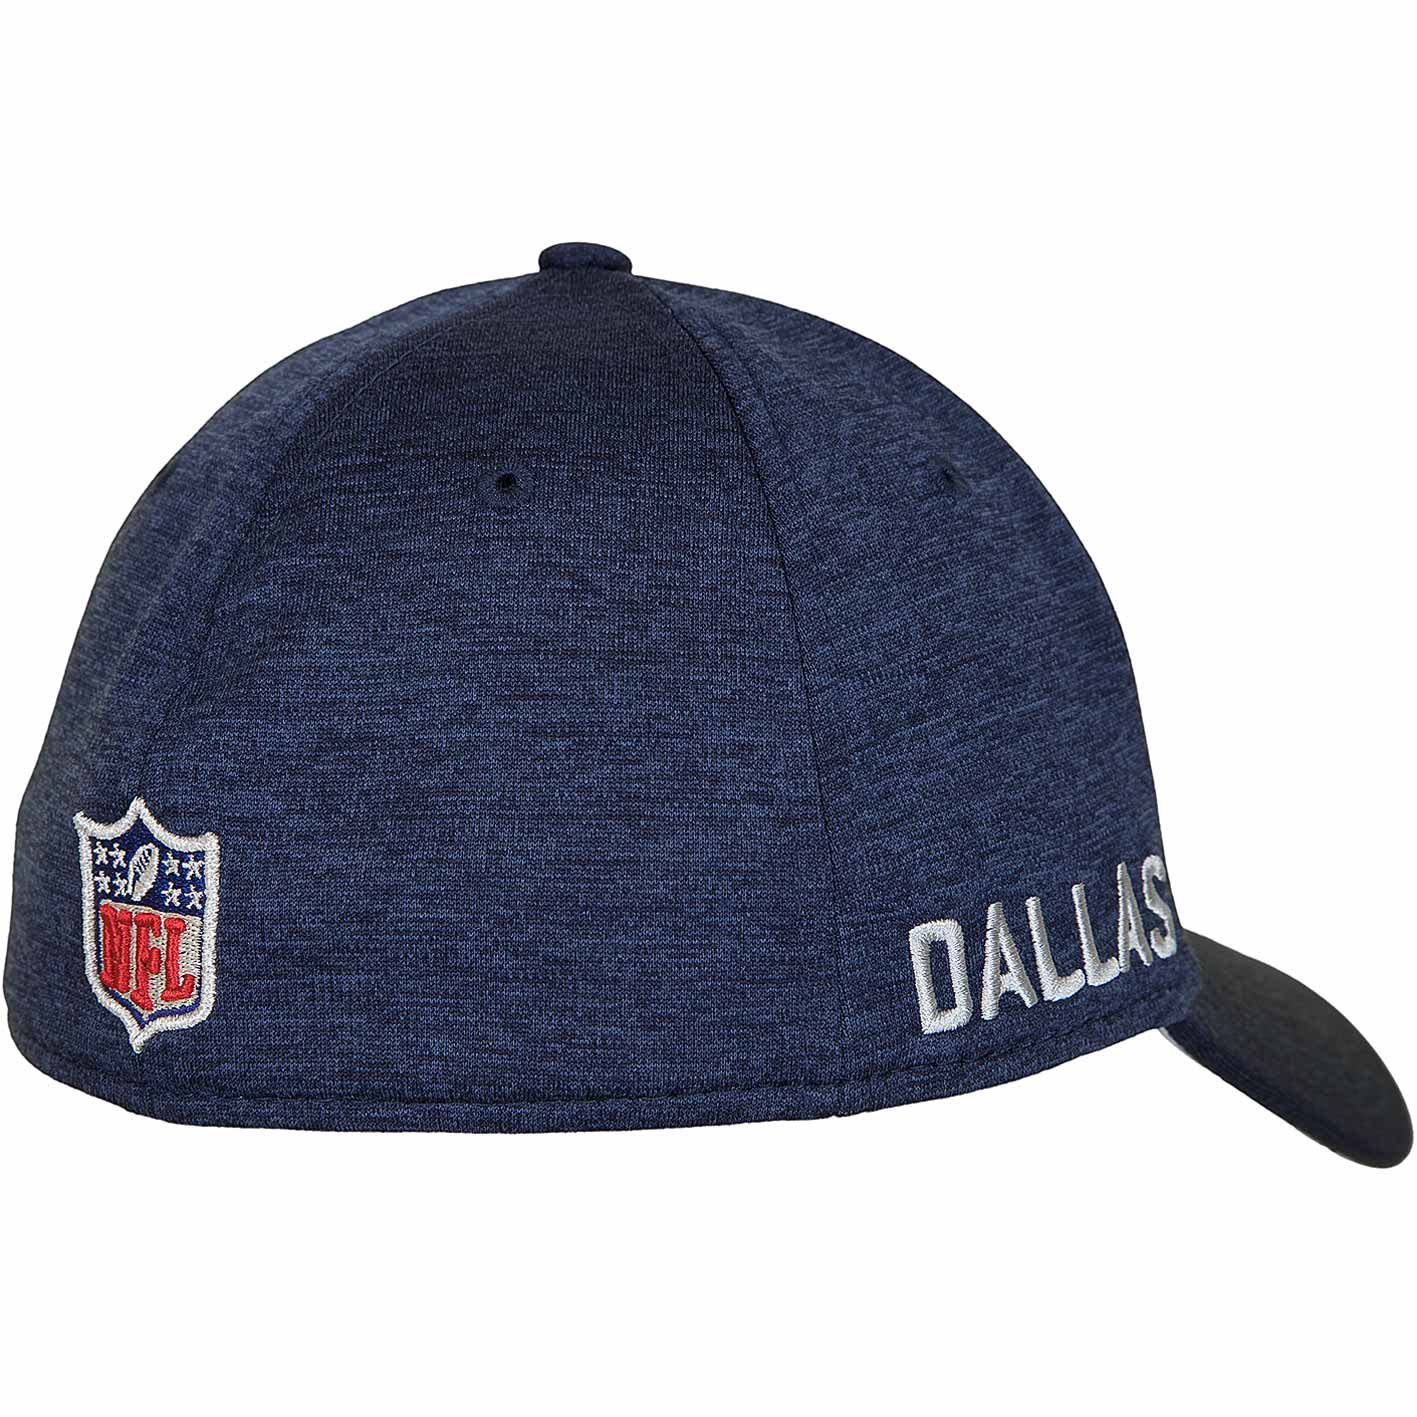 New Era 39Thirty Flexfit Cap OnField Road Dallas Cowboys dunkelblau grau e33eae4d58